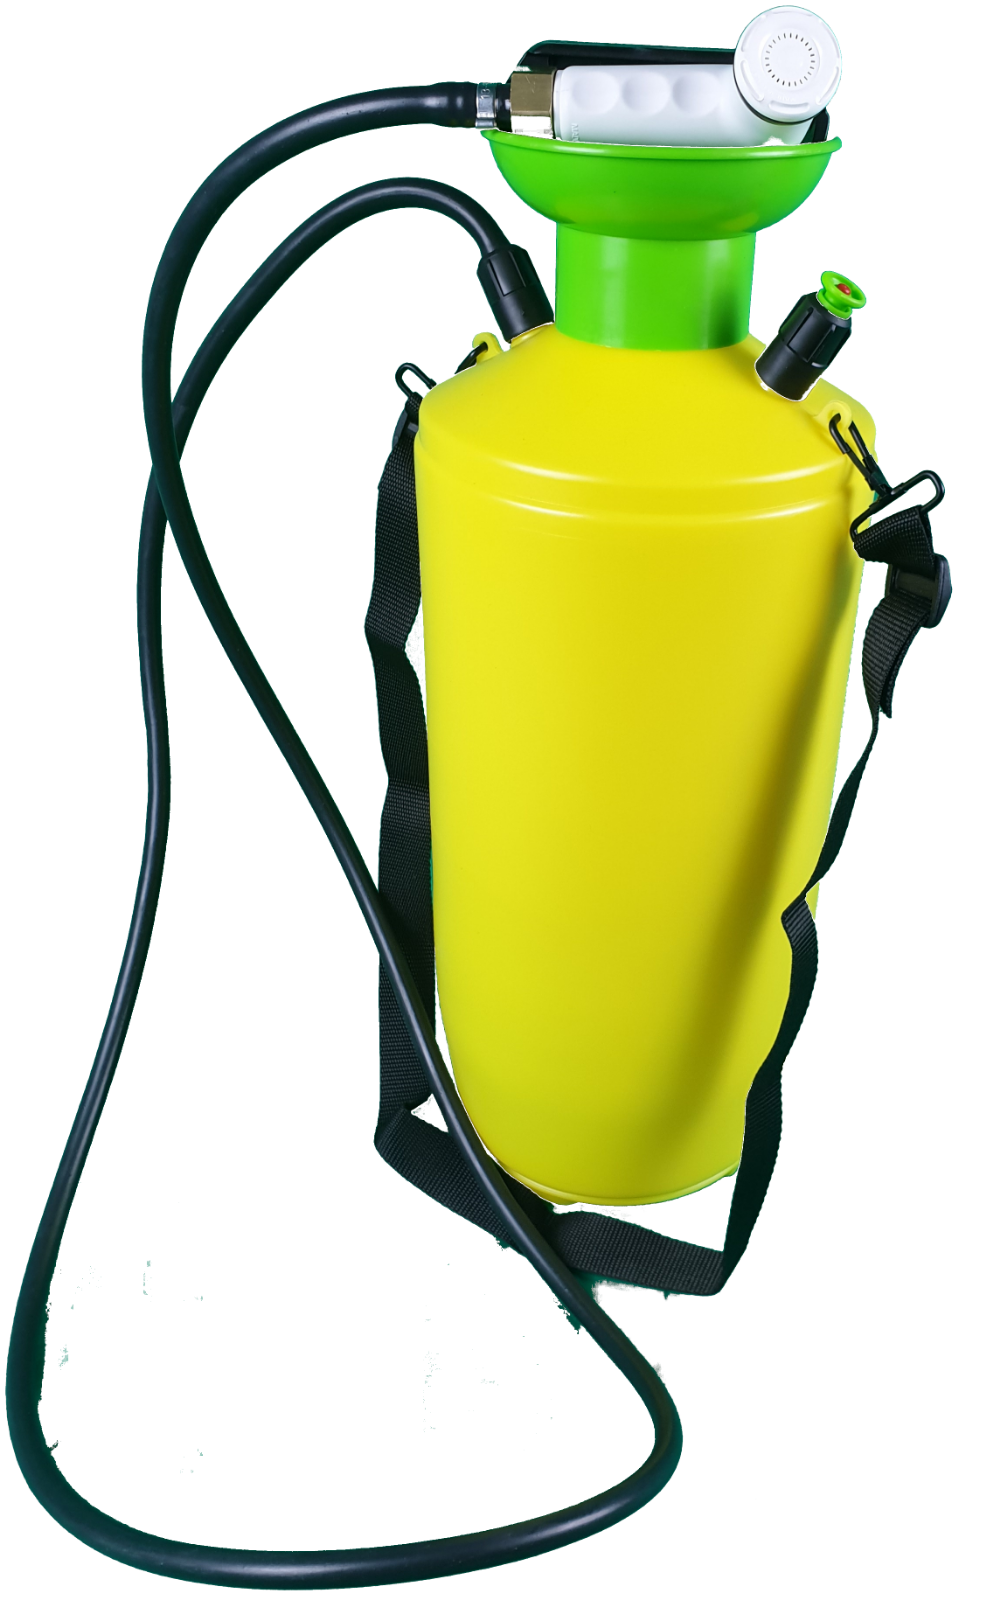 SOLO 10 PORTABLE SHOWER FOR CAMPING, CARAVANING, BEACH, PETS FROM SOLO